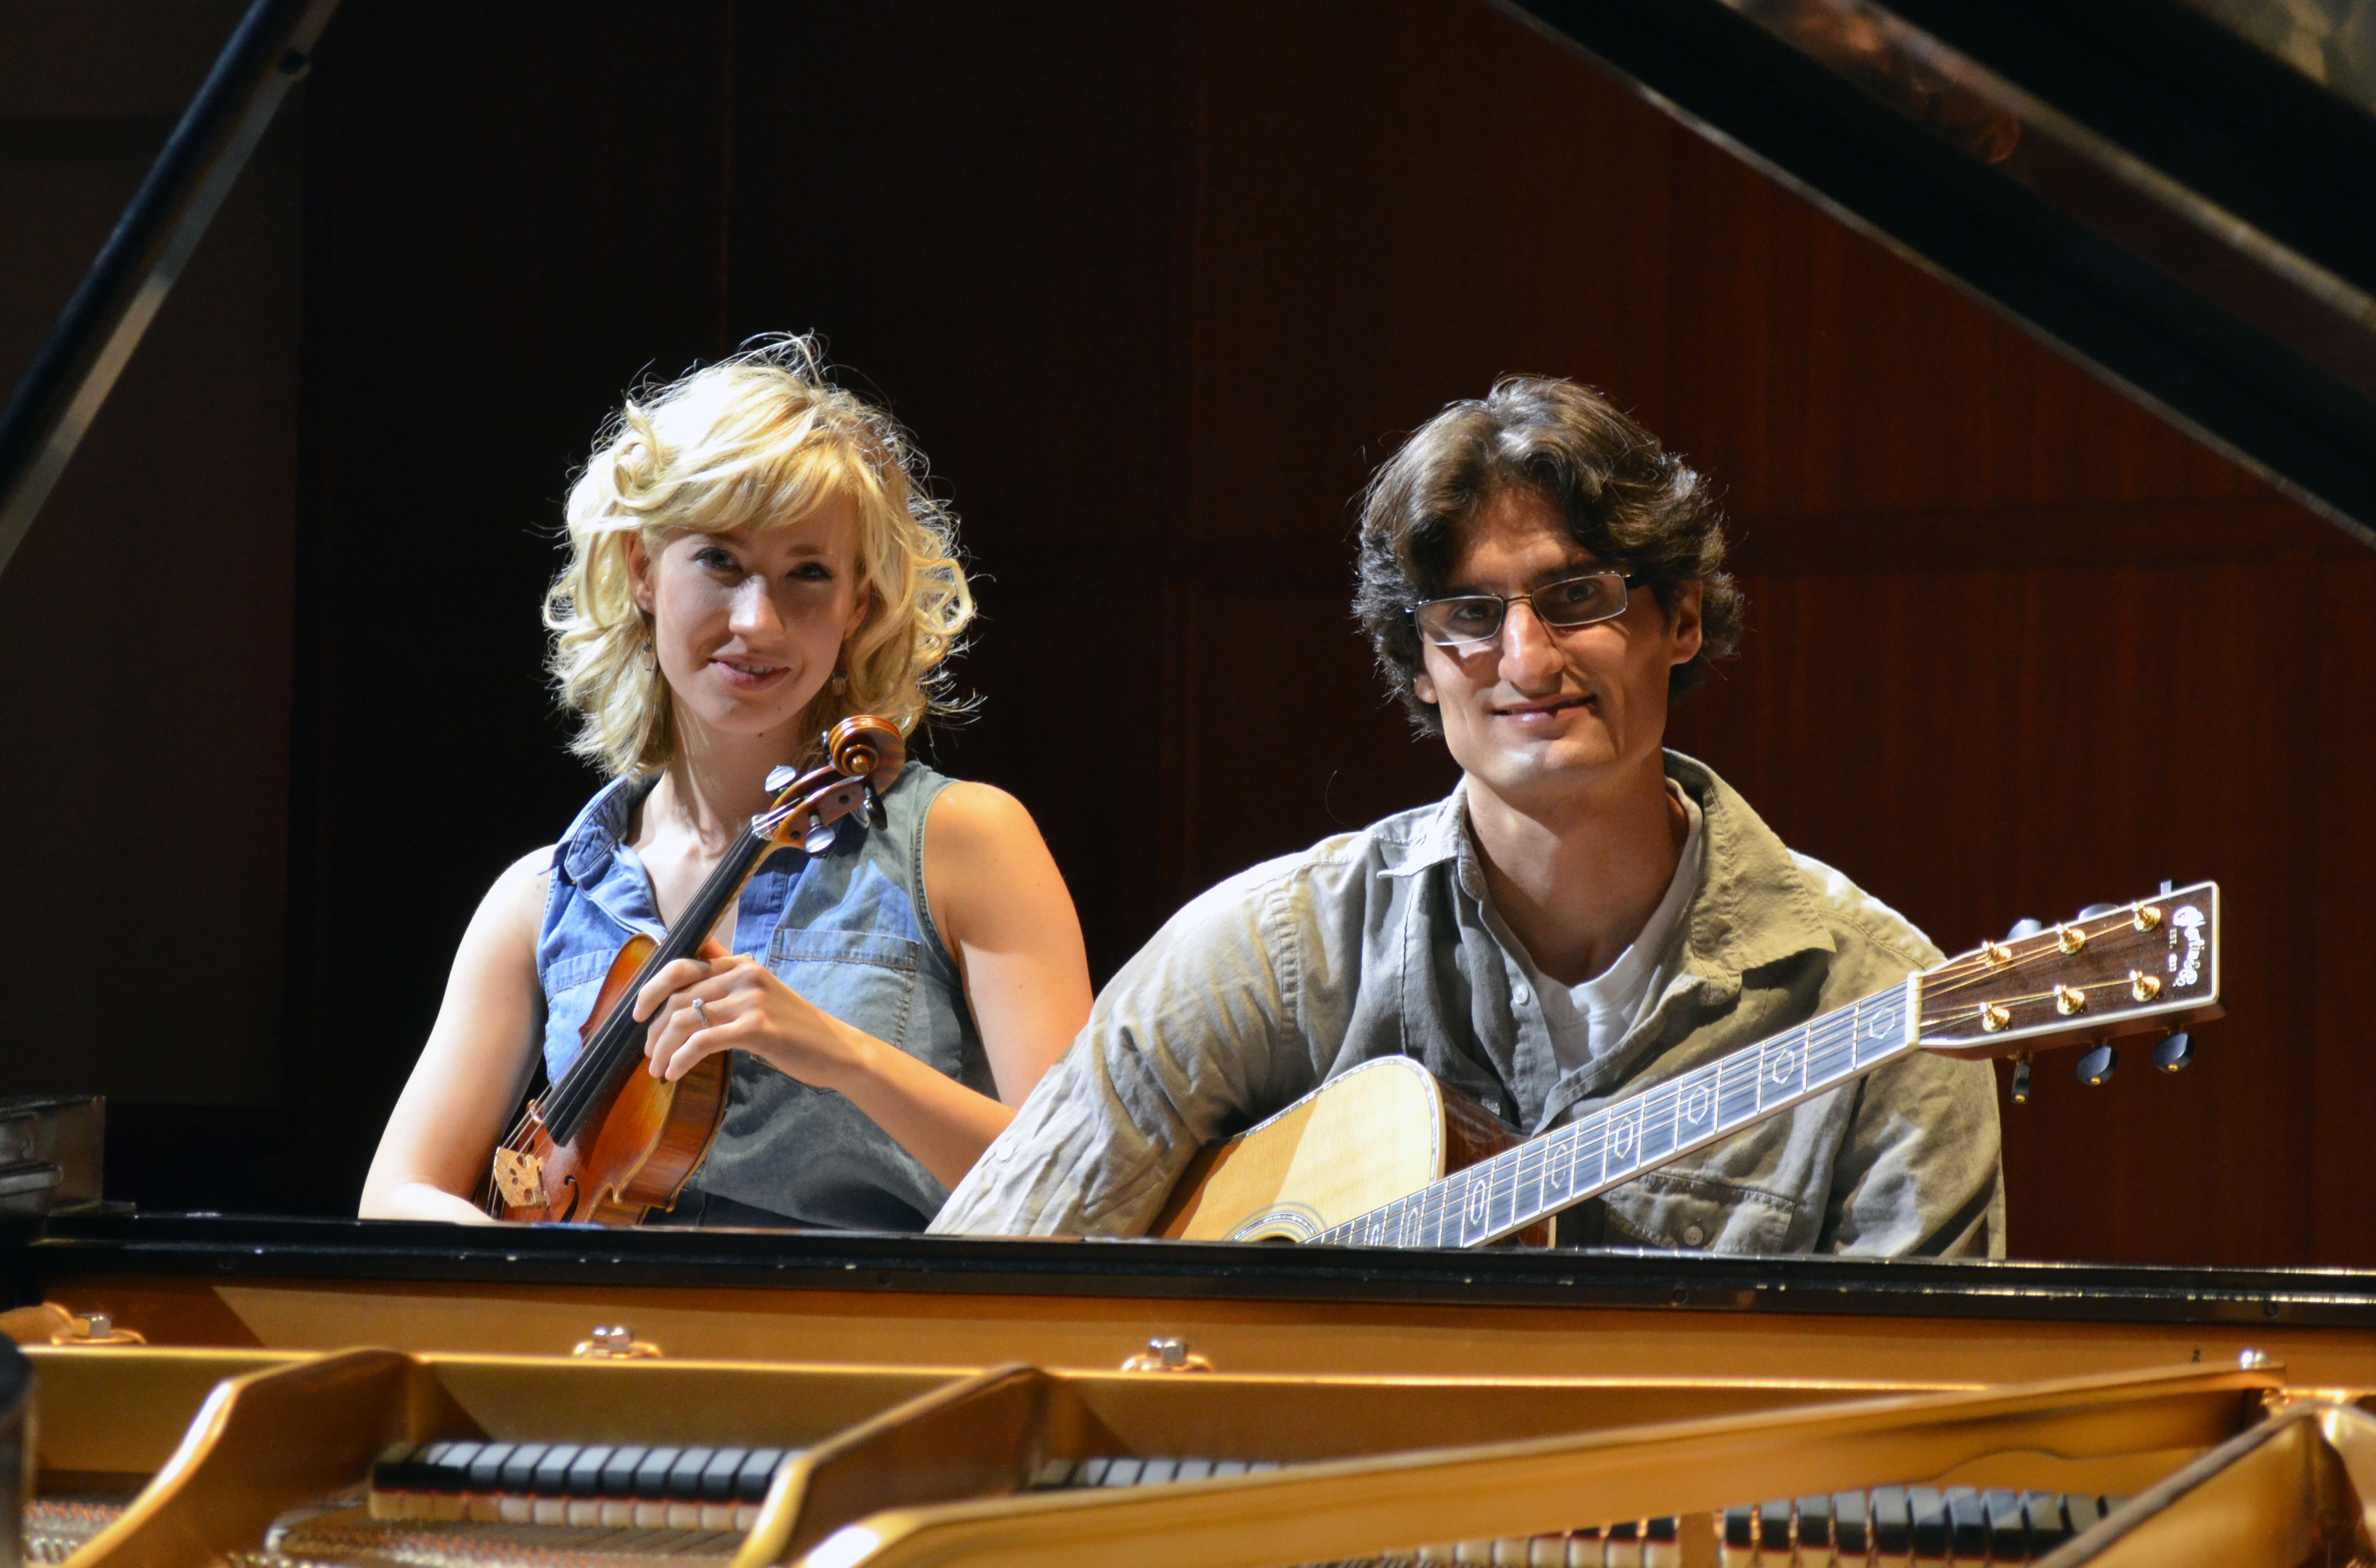 Cedarville University graduates Emily and Daniel Kohavi are using their talent to impact the music industry in Nashville. Photo credit: Charles Clevenger.